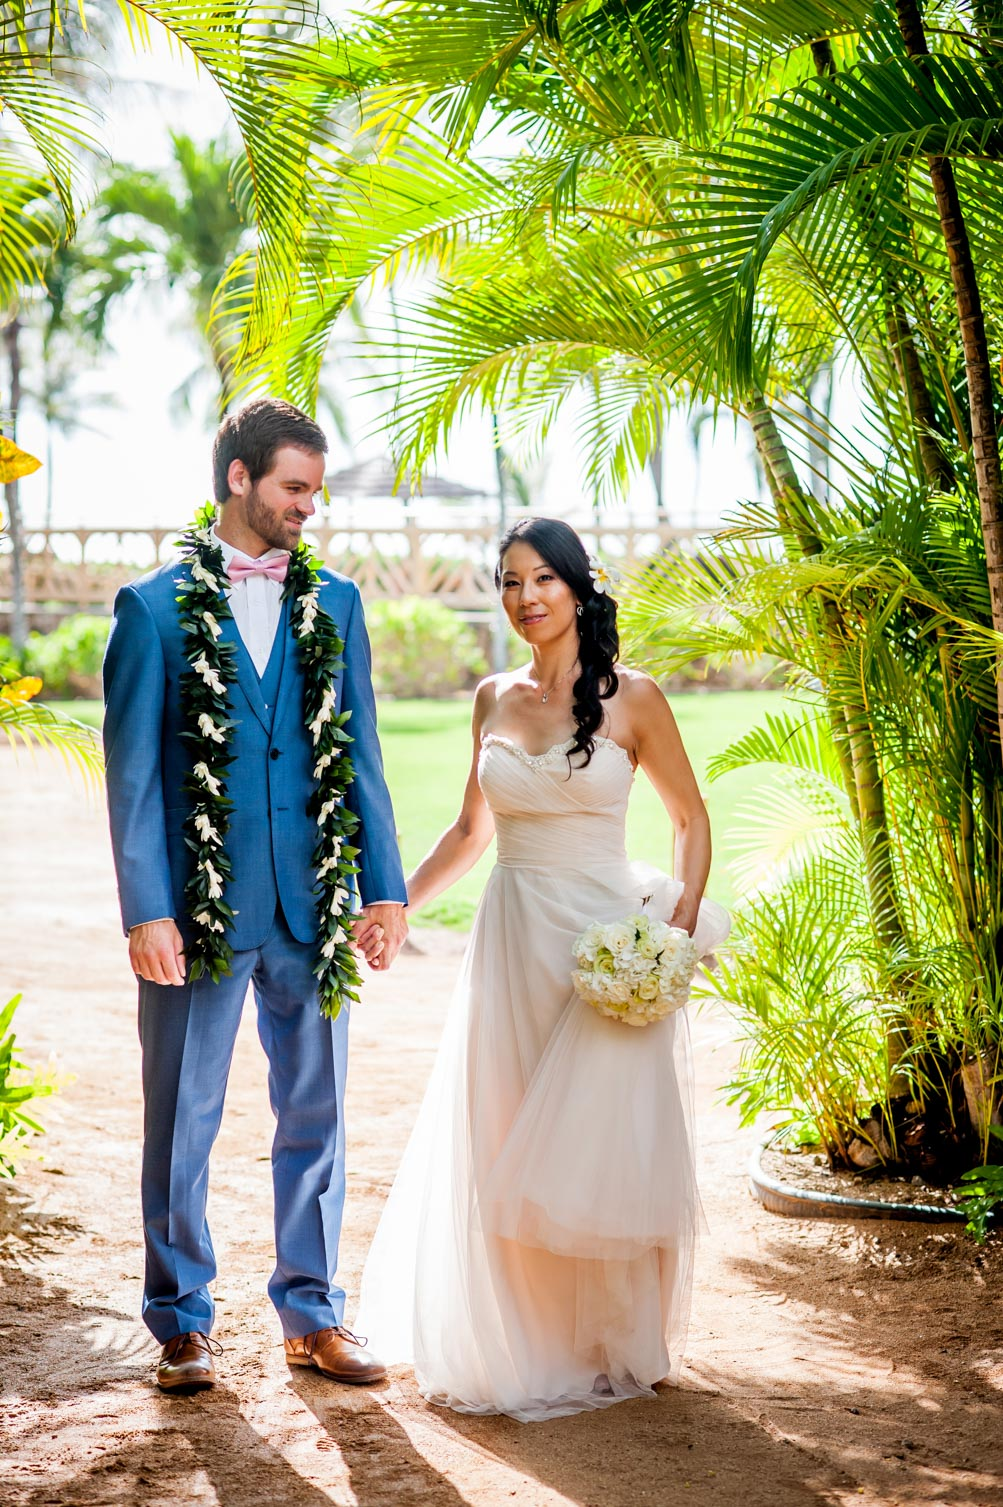 Hawaii wedding couple holding hands in lush greenery